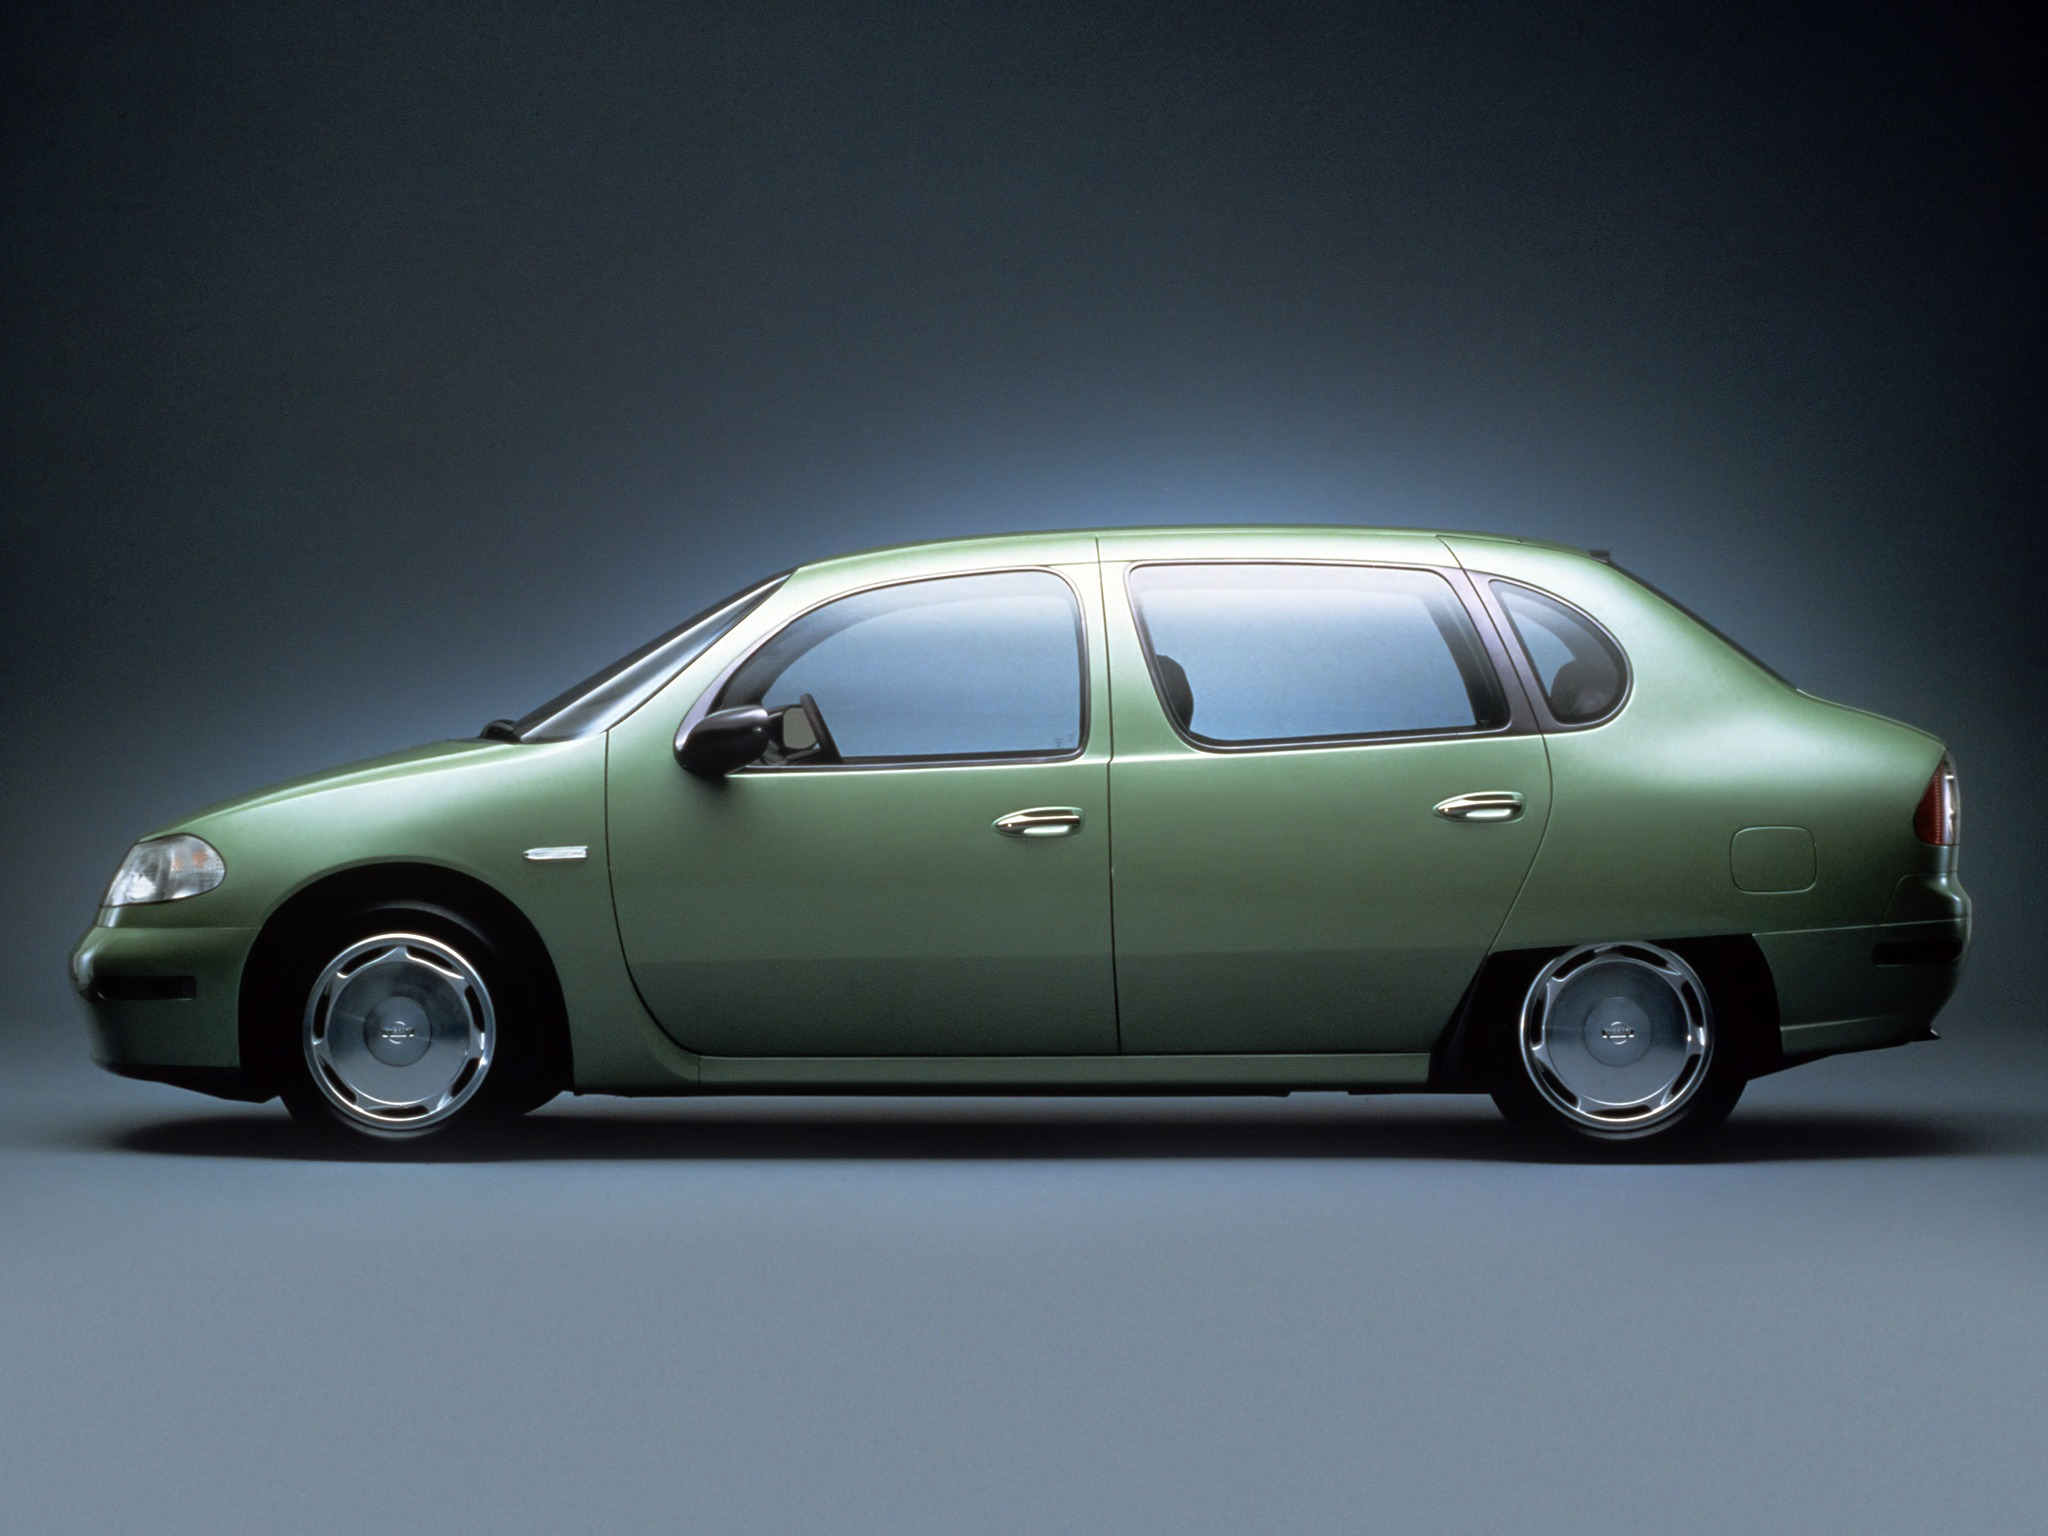 Nissan AQ-X Concept (1993) - Old Concept Cars